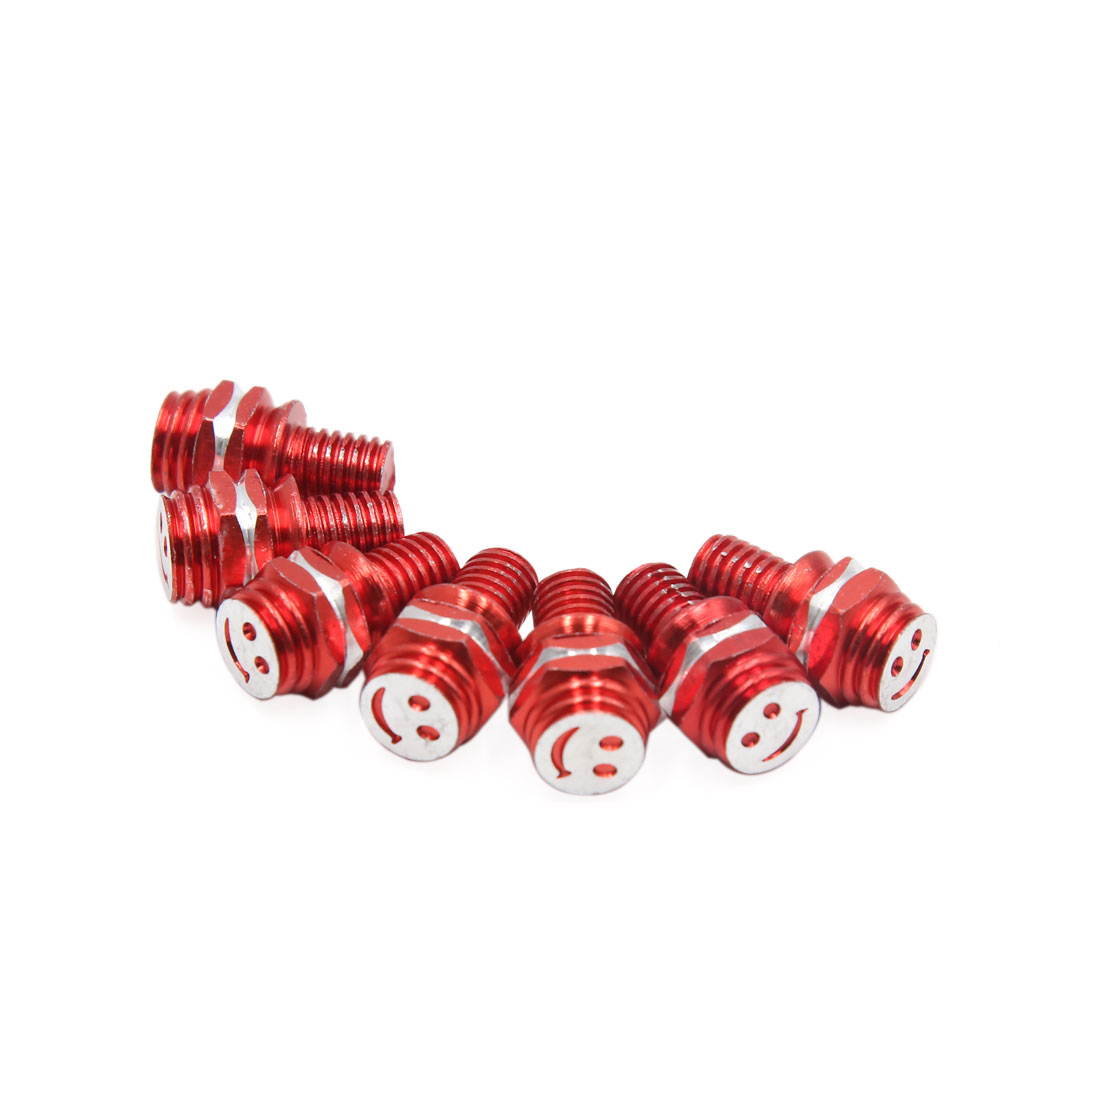 7pcs Red 8mm Thread Diameter Smiling Face Pattern Motorcycle License Plate Bolt Screws